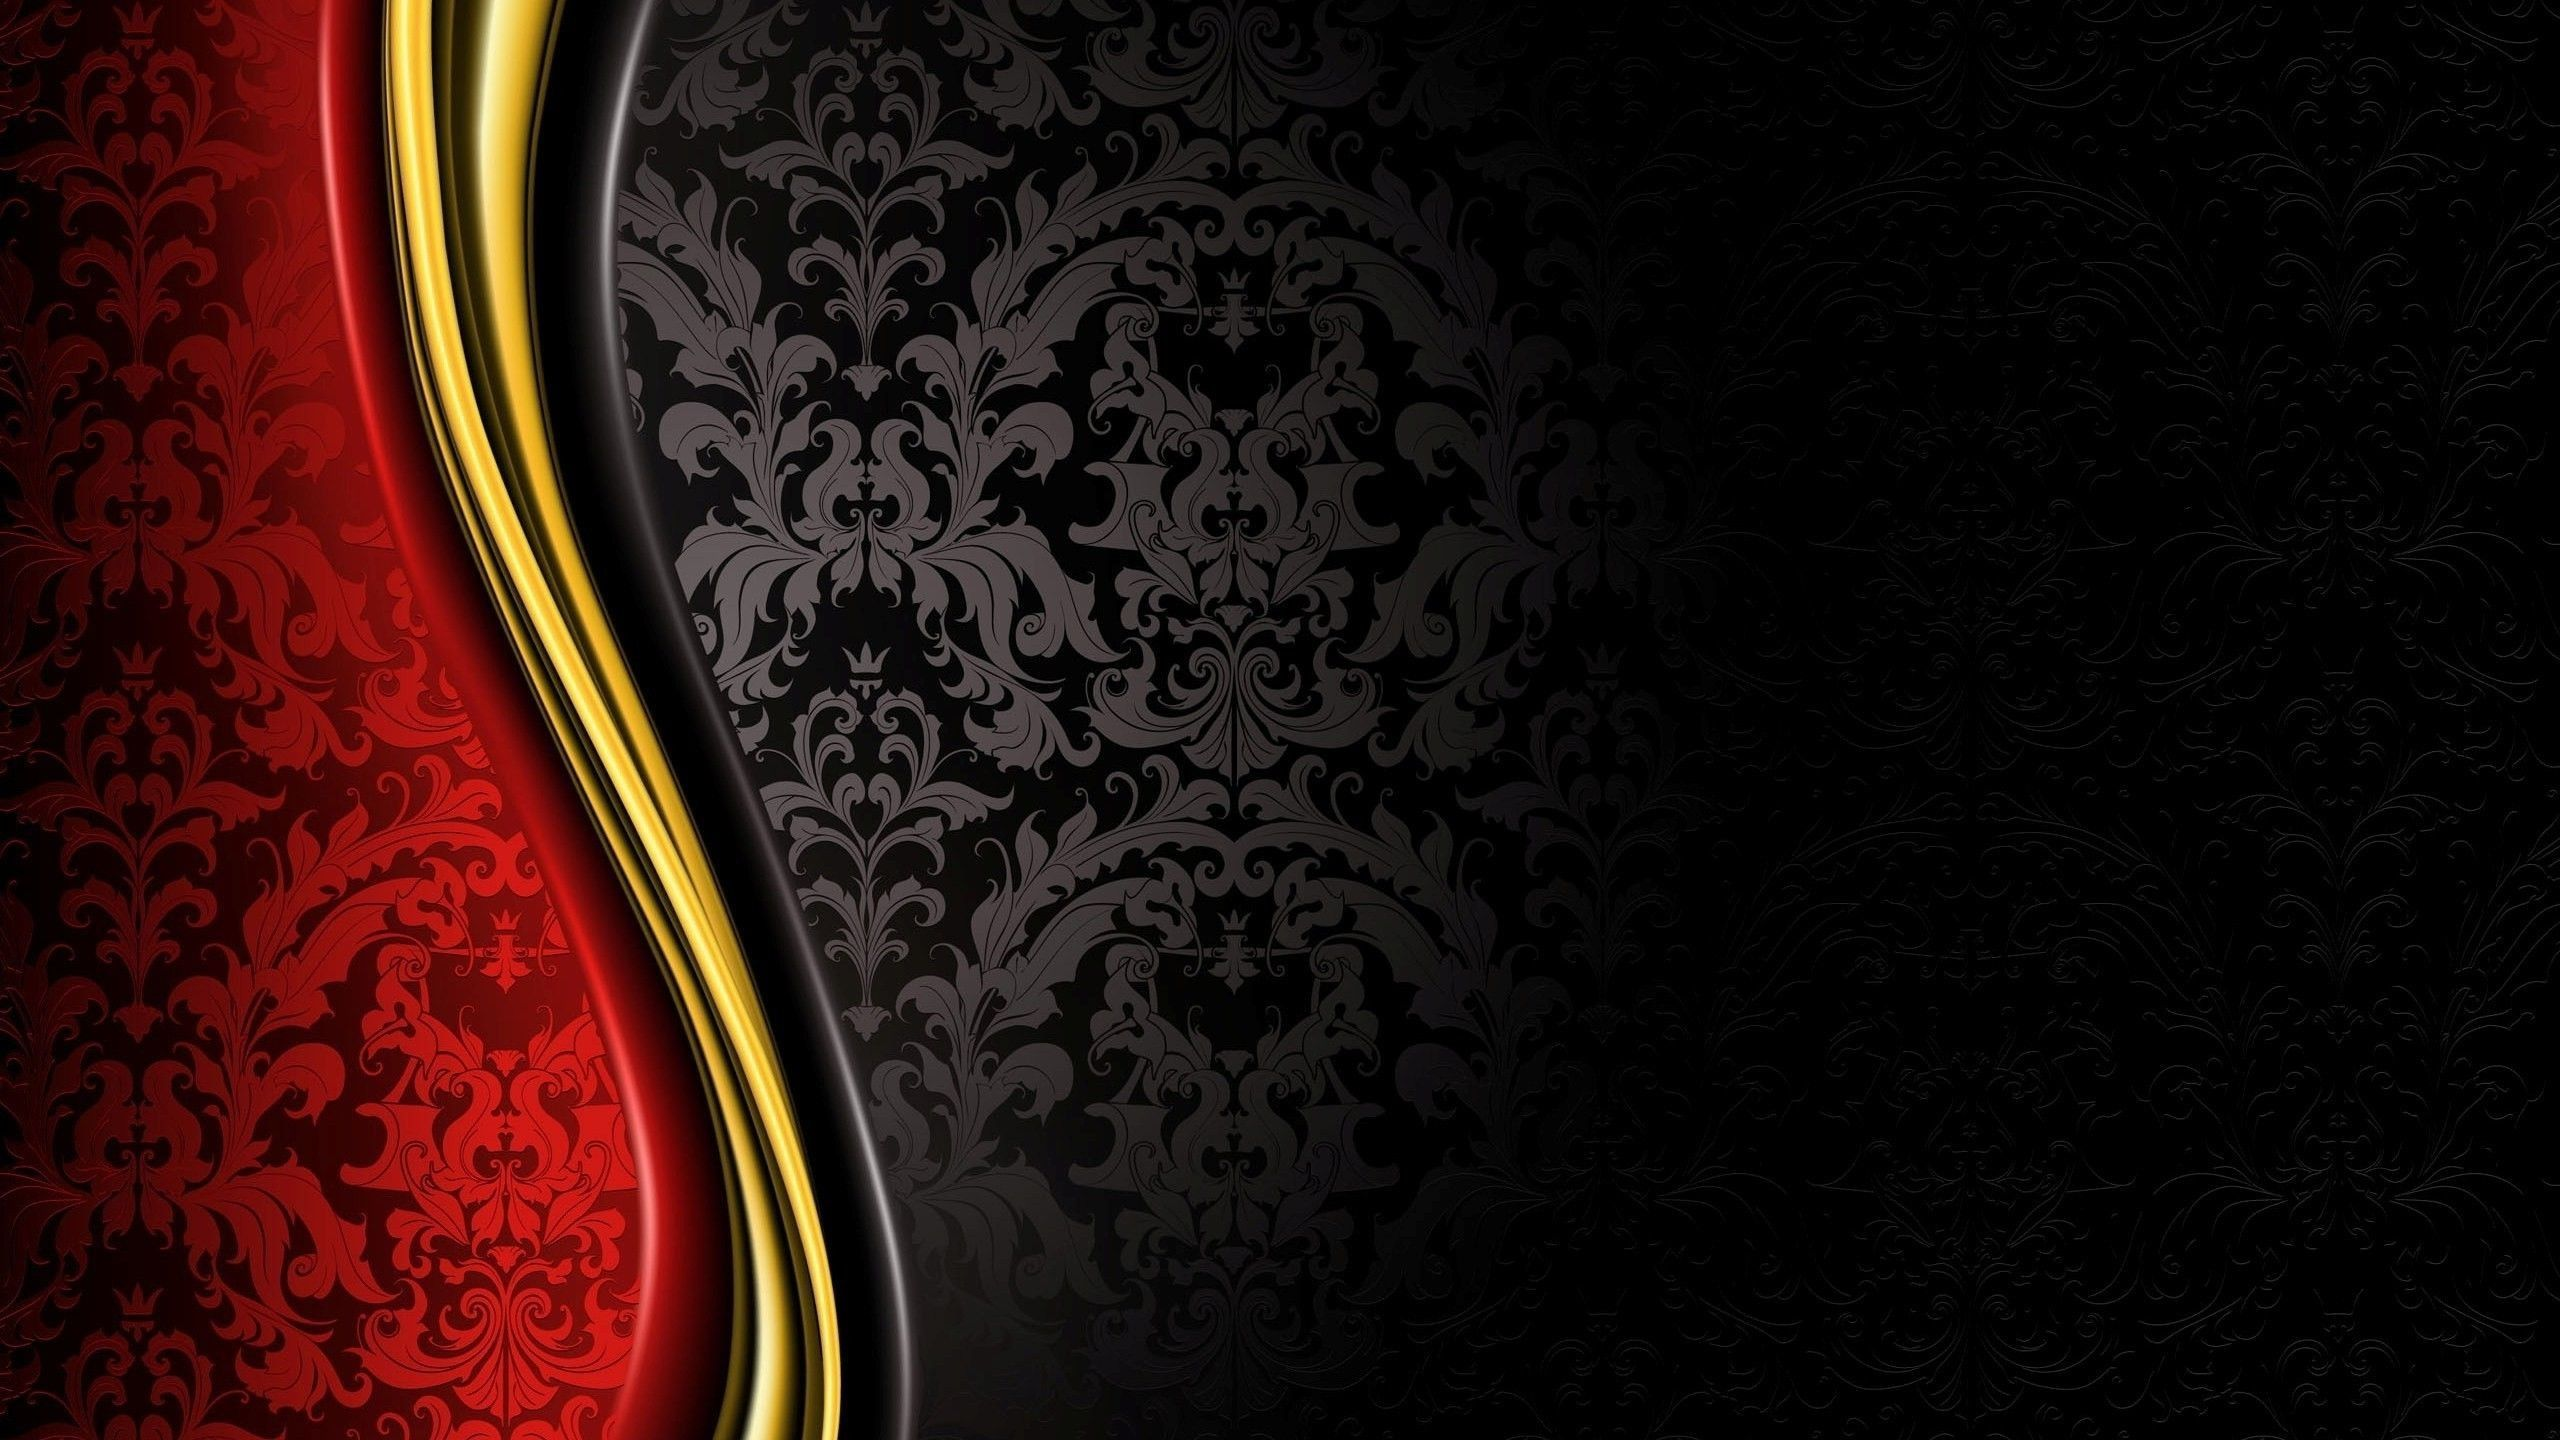 Red And Gold Wallpapers Top Free Red And Gold Backgrounds Wallpaperaccess Seni Burgundy Hewan